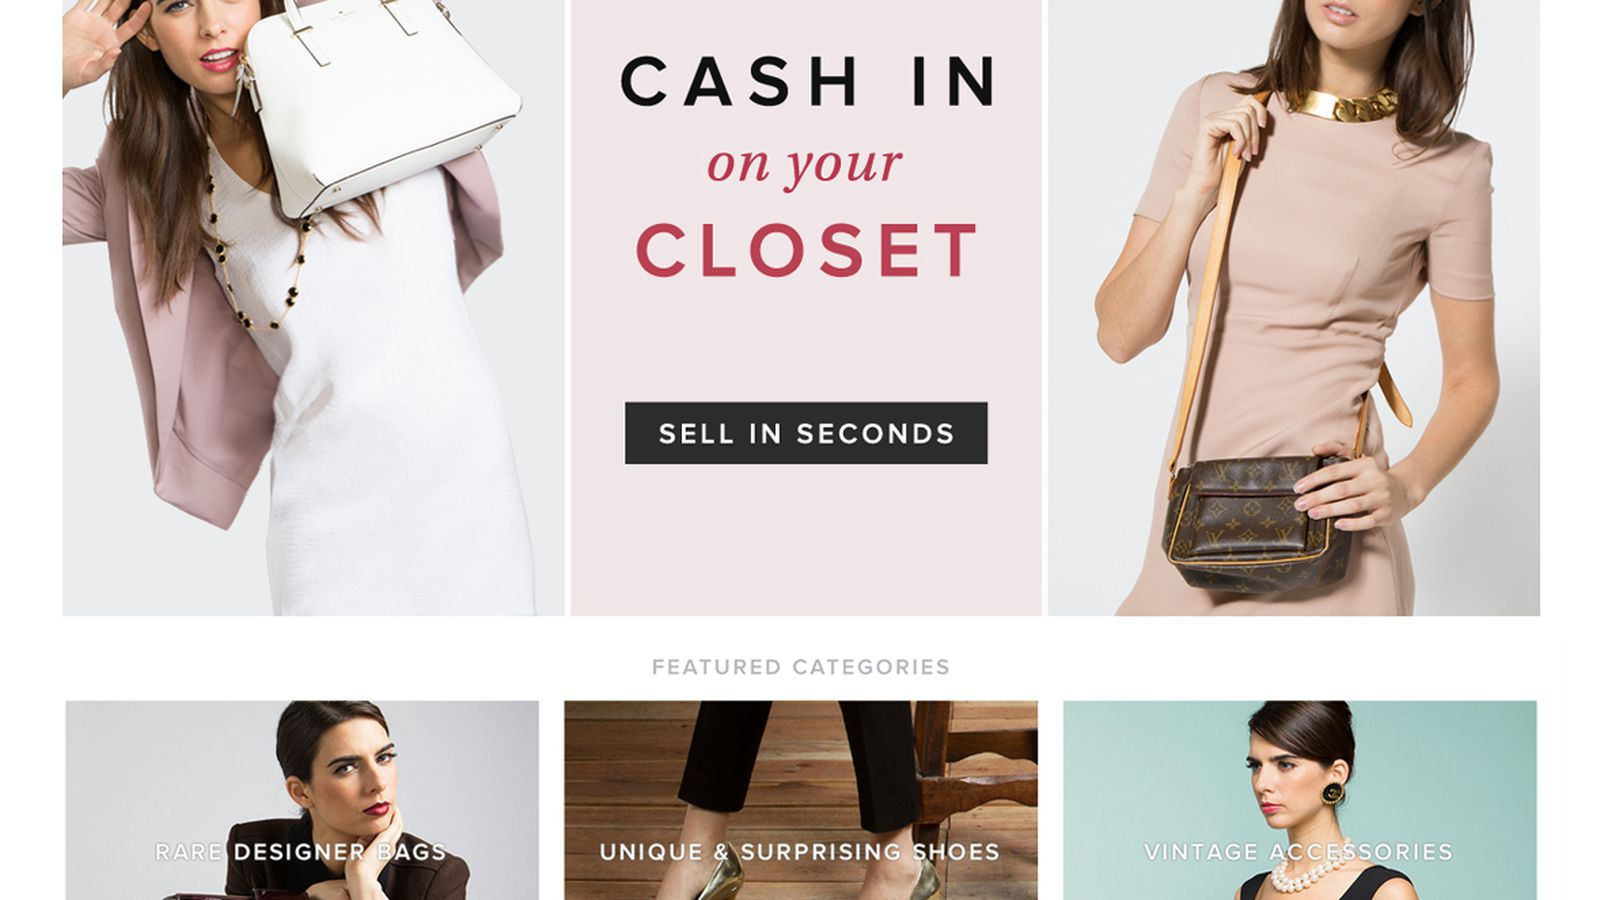 Kleiner Perkins Leads $30 Million Investment in Tradesy, a ...